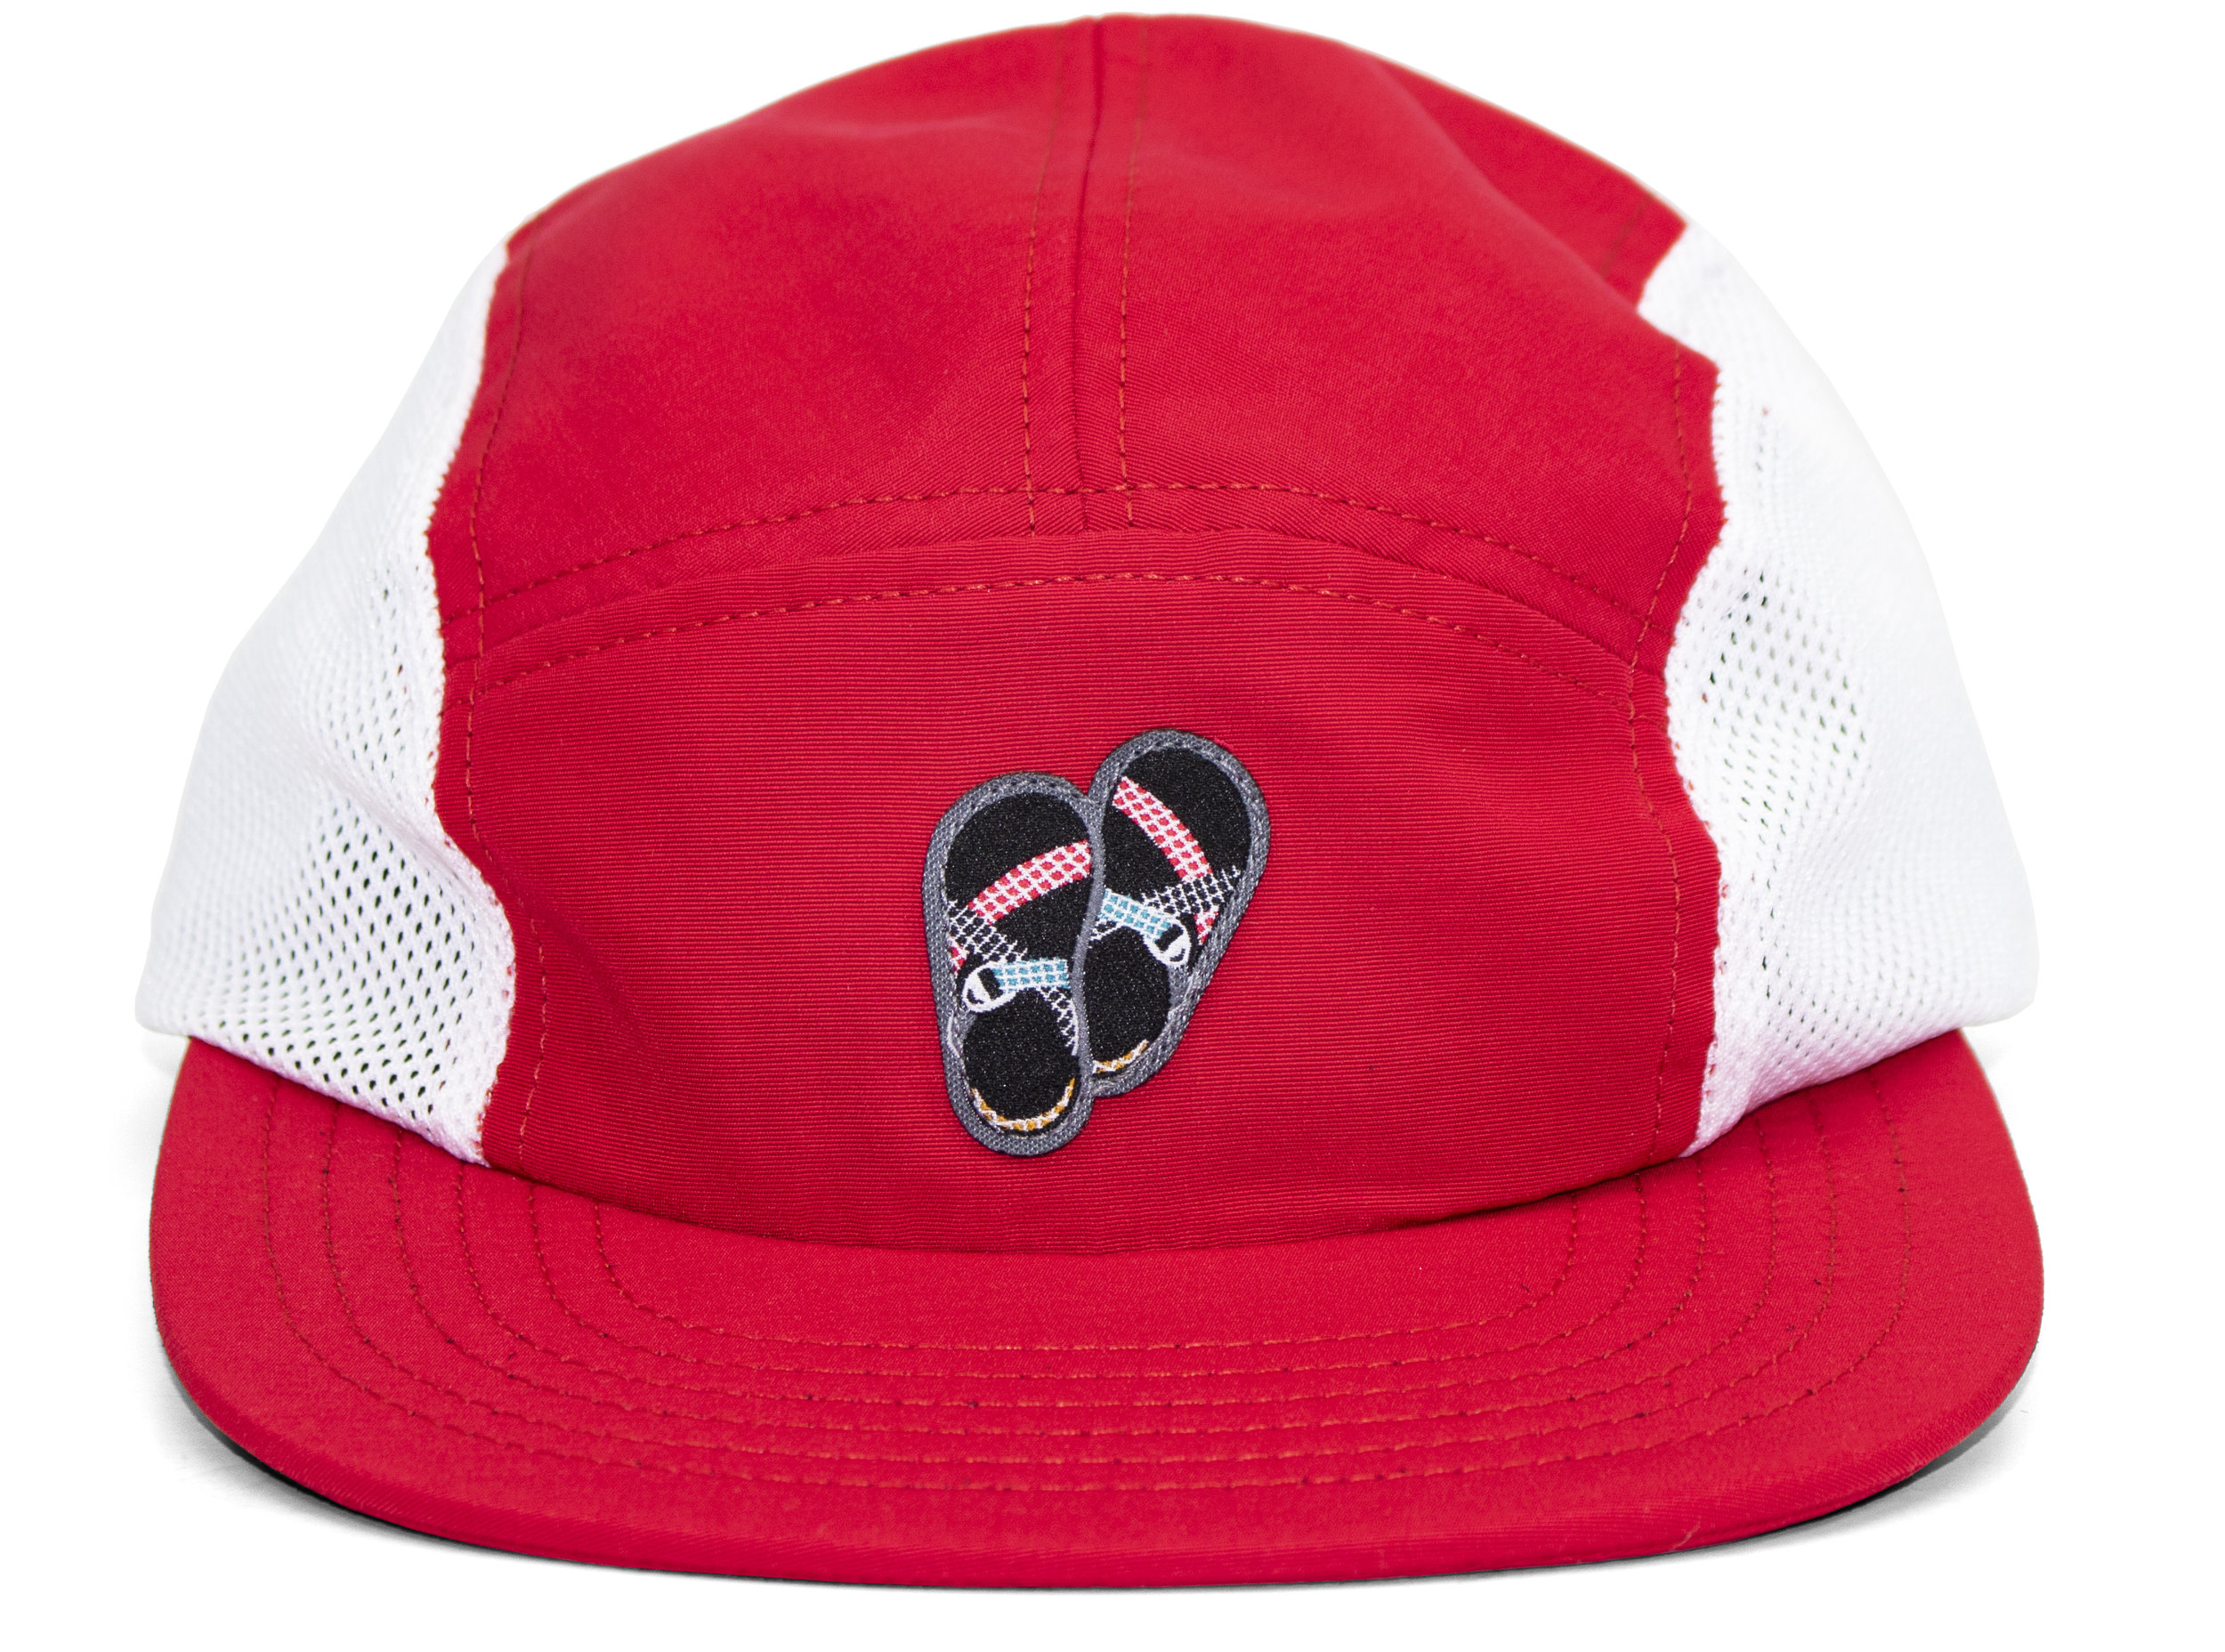 JC199509_nylon_hat_red_front.jpg